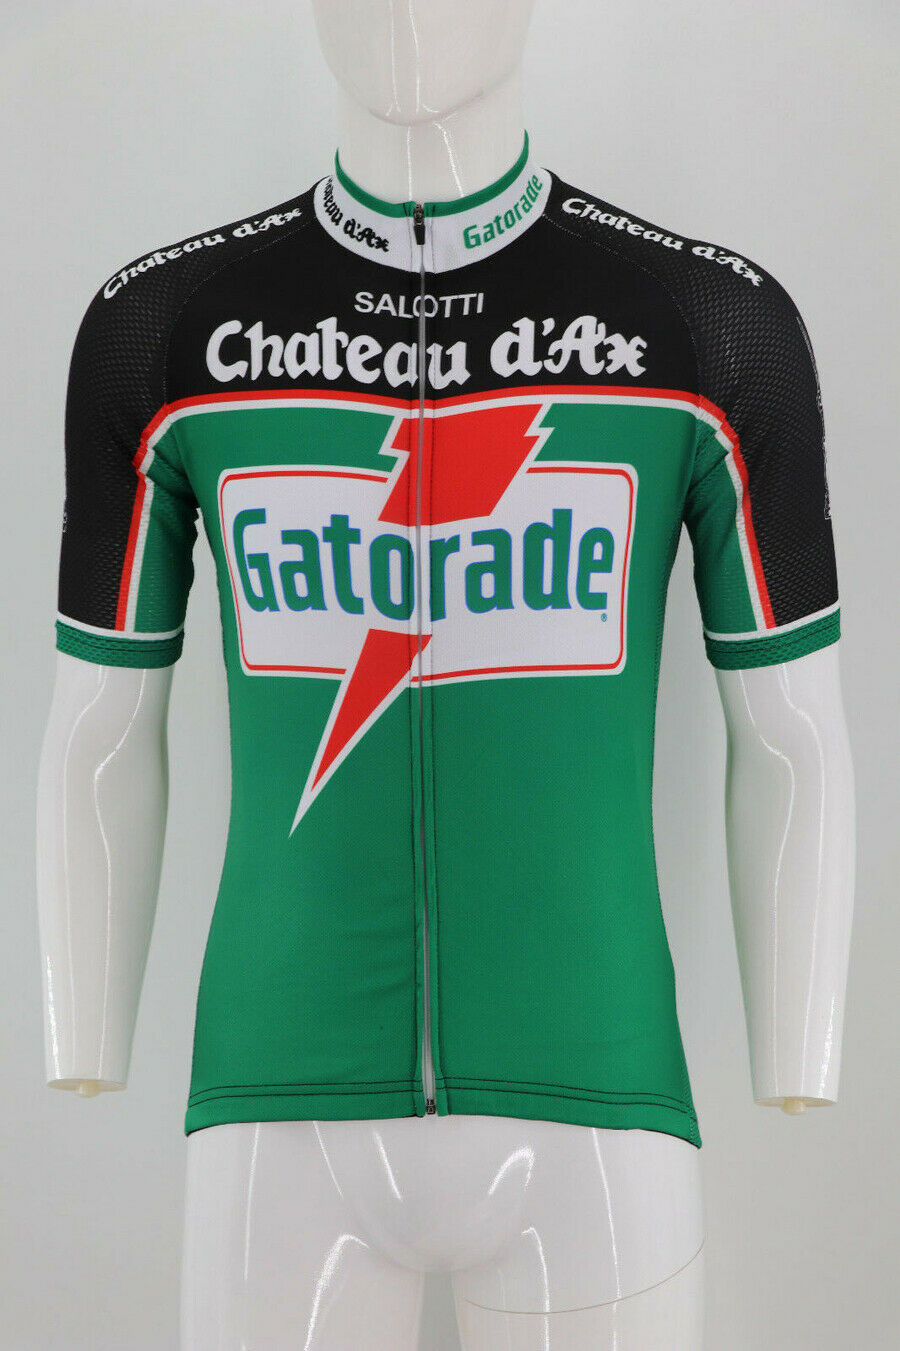 Retro GATORADE Cycling Jersey And Bib shorts sets Cycling Short Sleeve Jersey